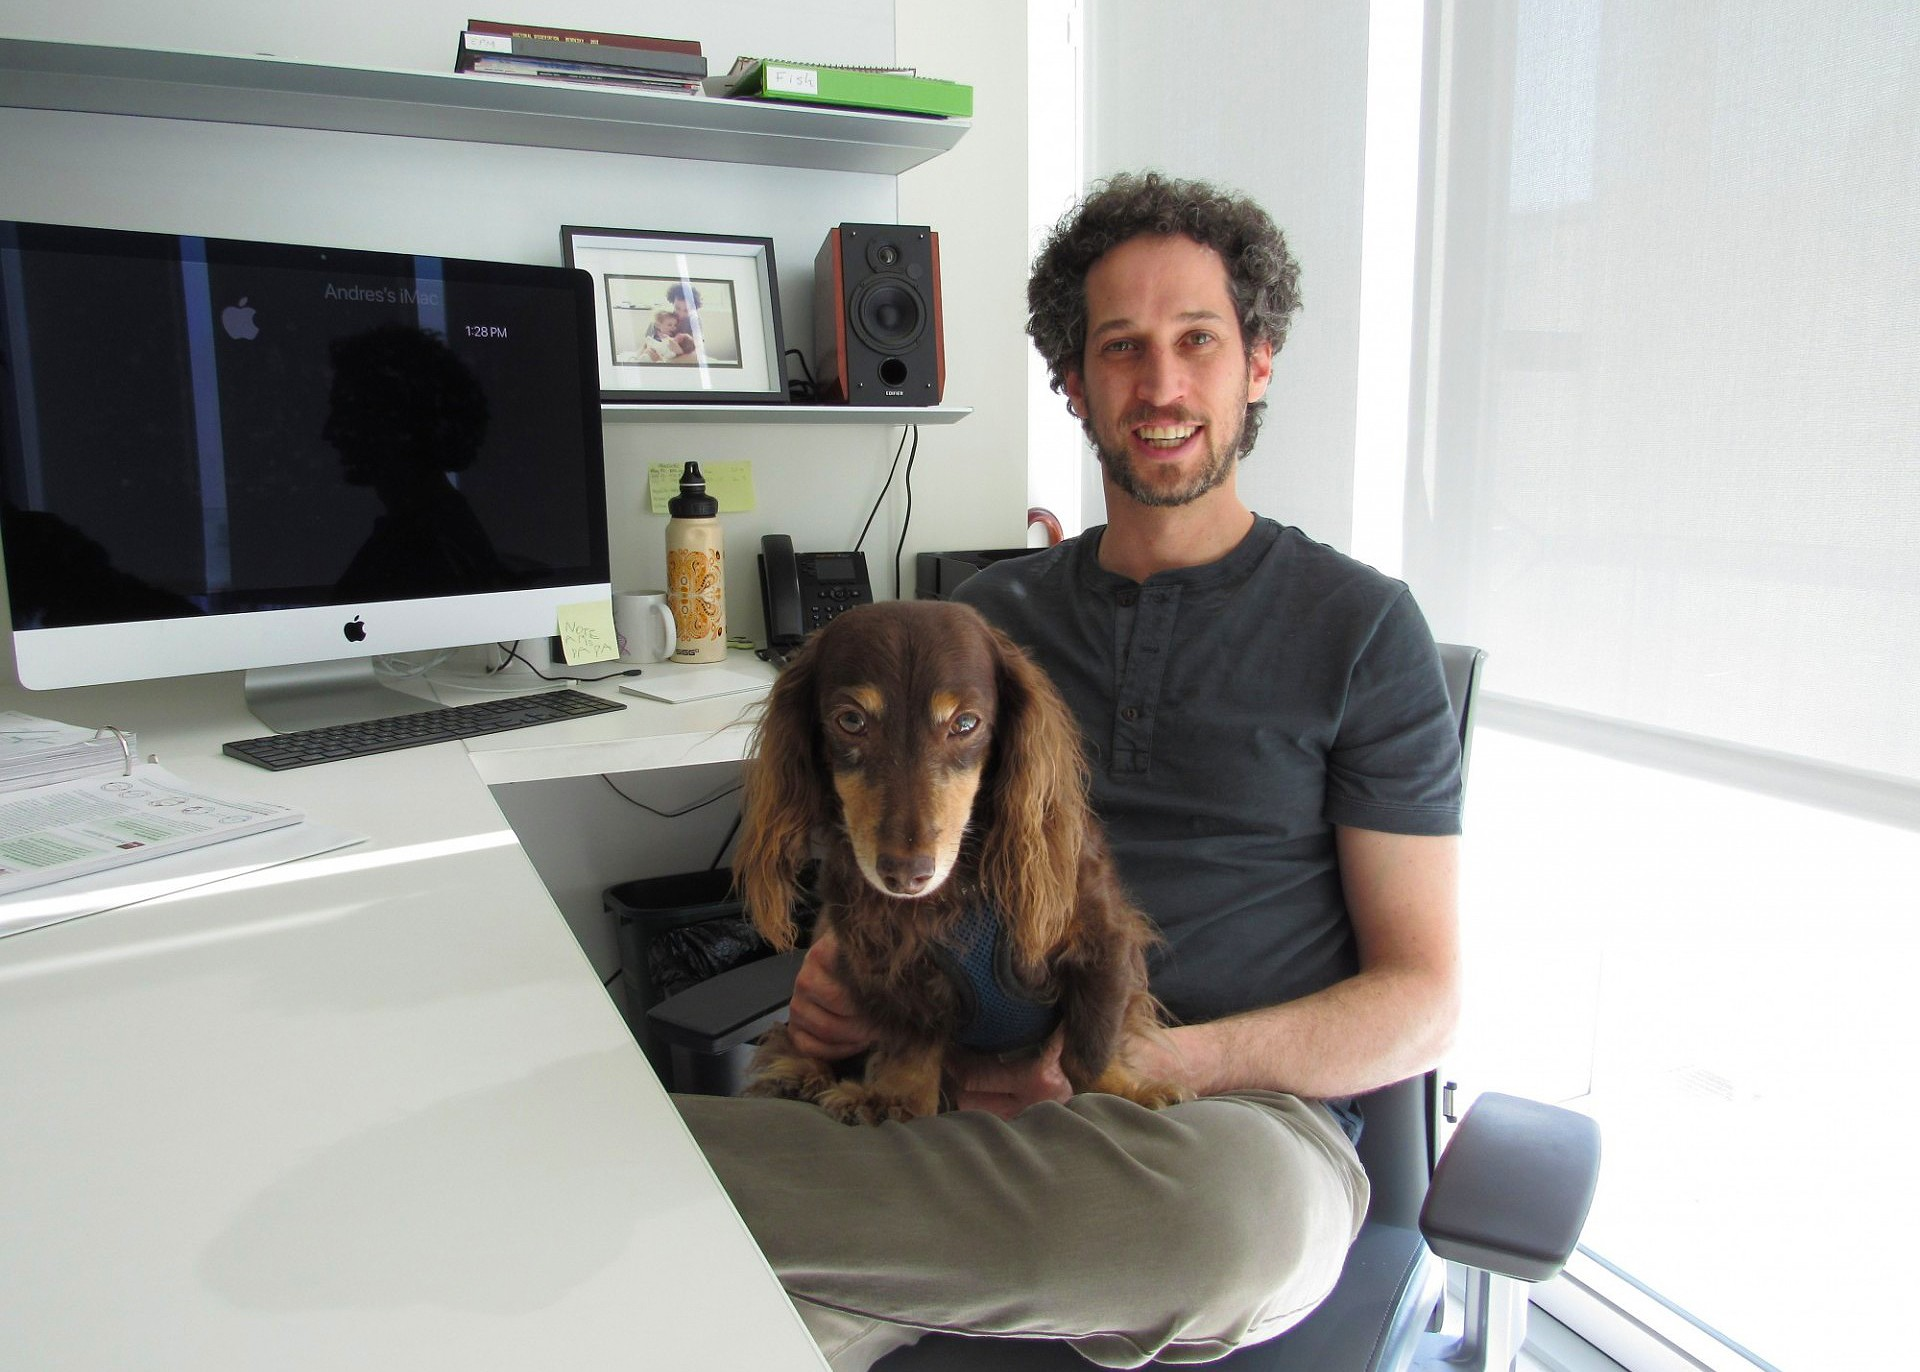 Andres Bendesky in lab with dog in his lap.